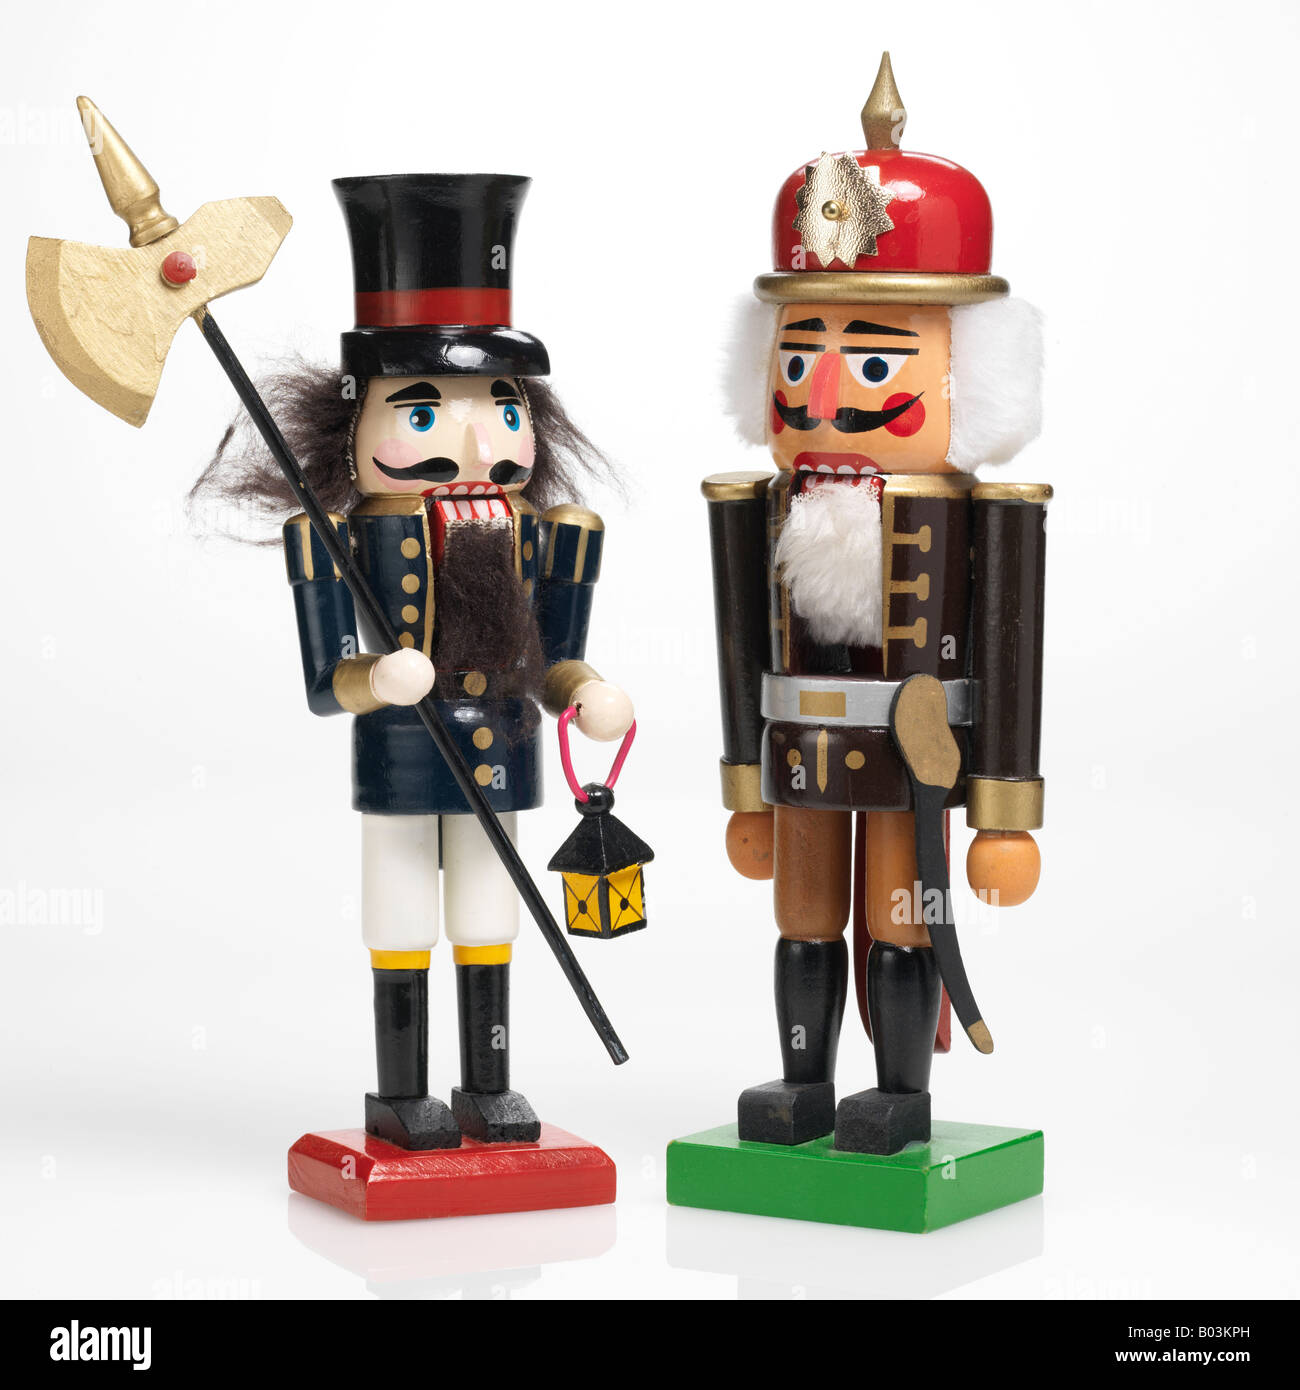 wooden nutcrackers on white background - Stock Image